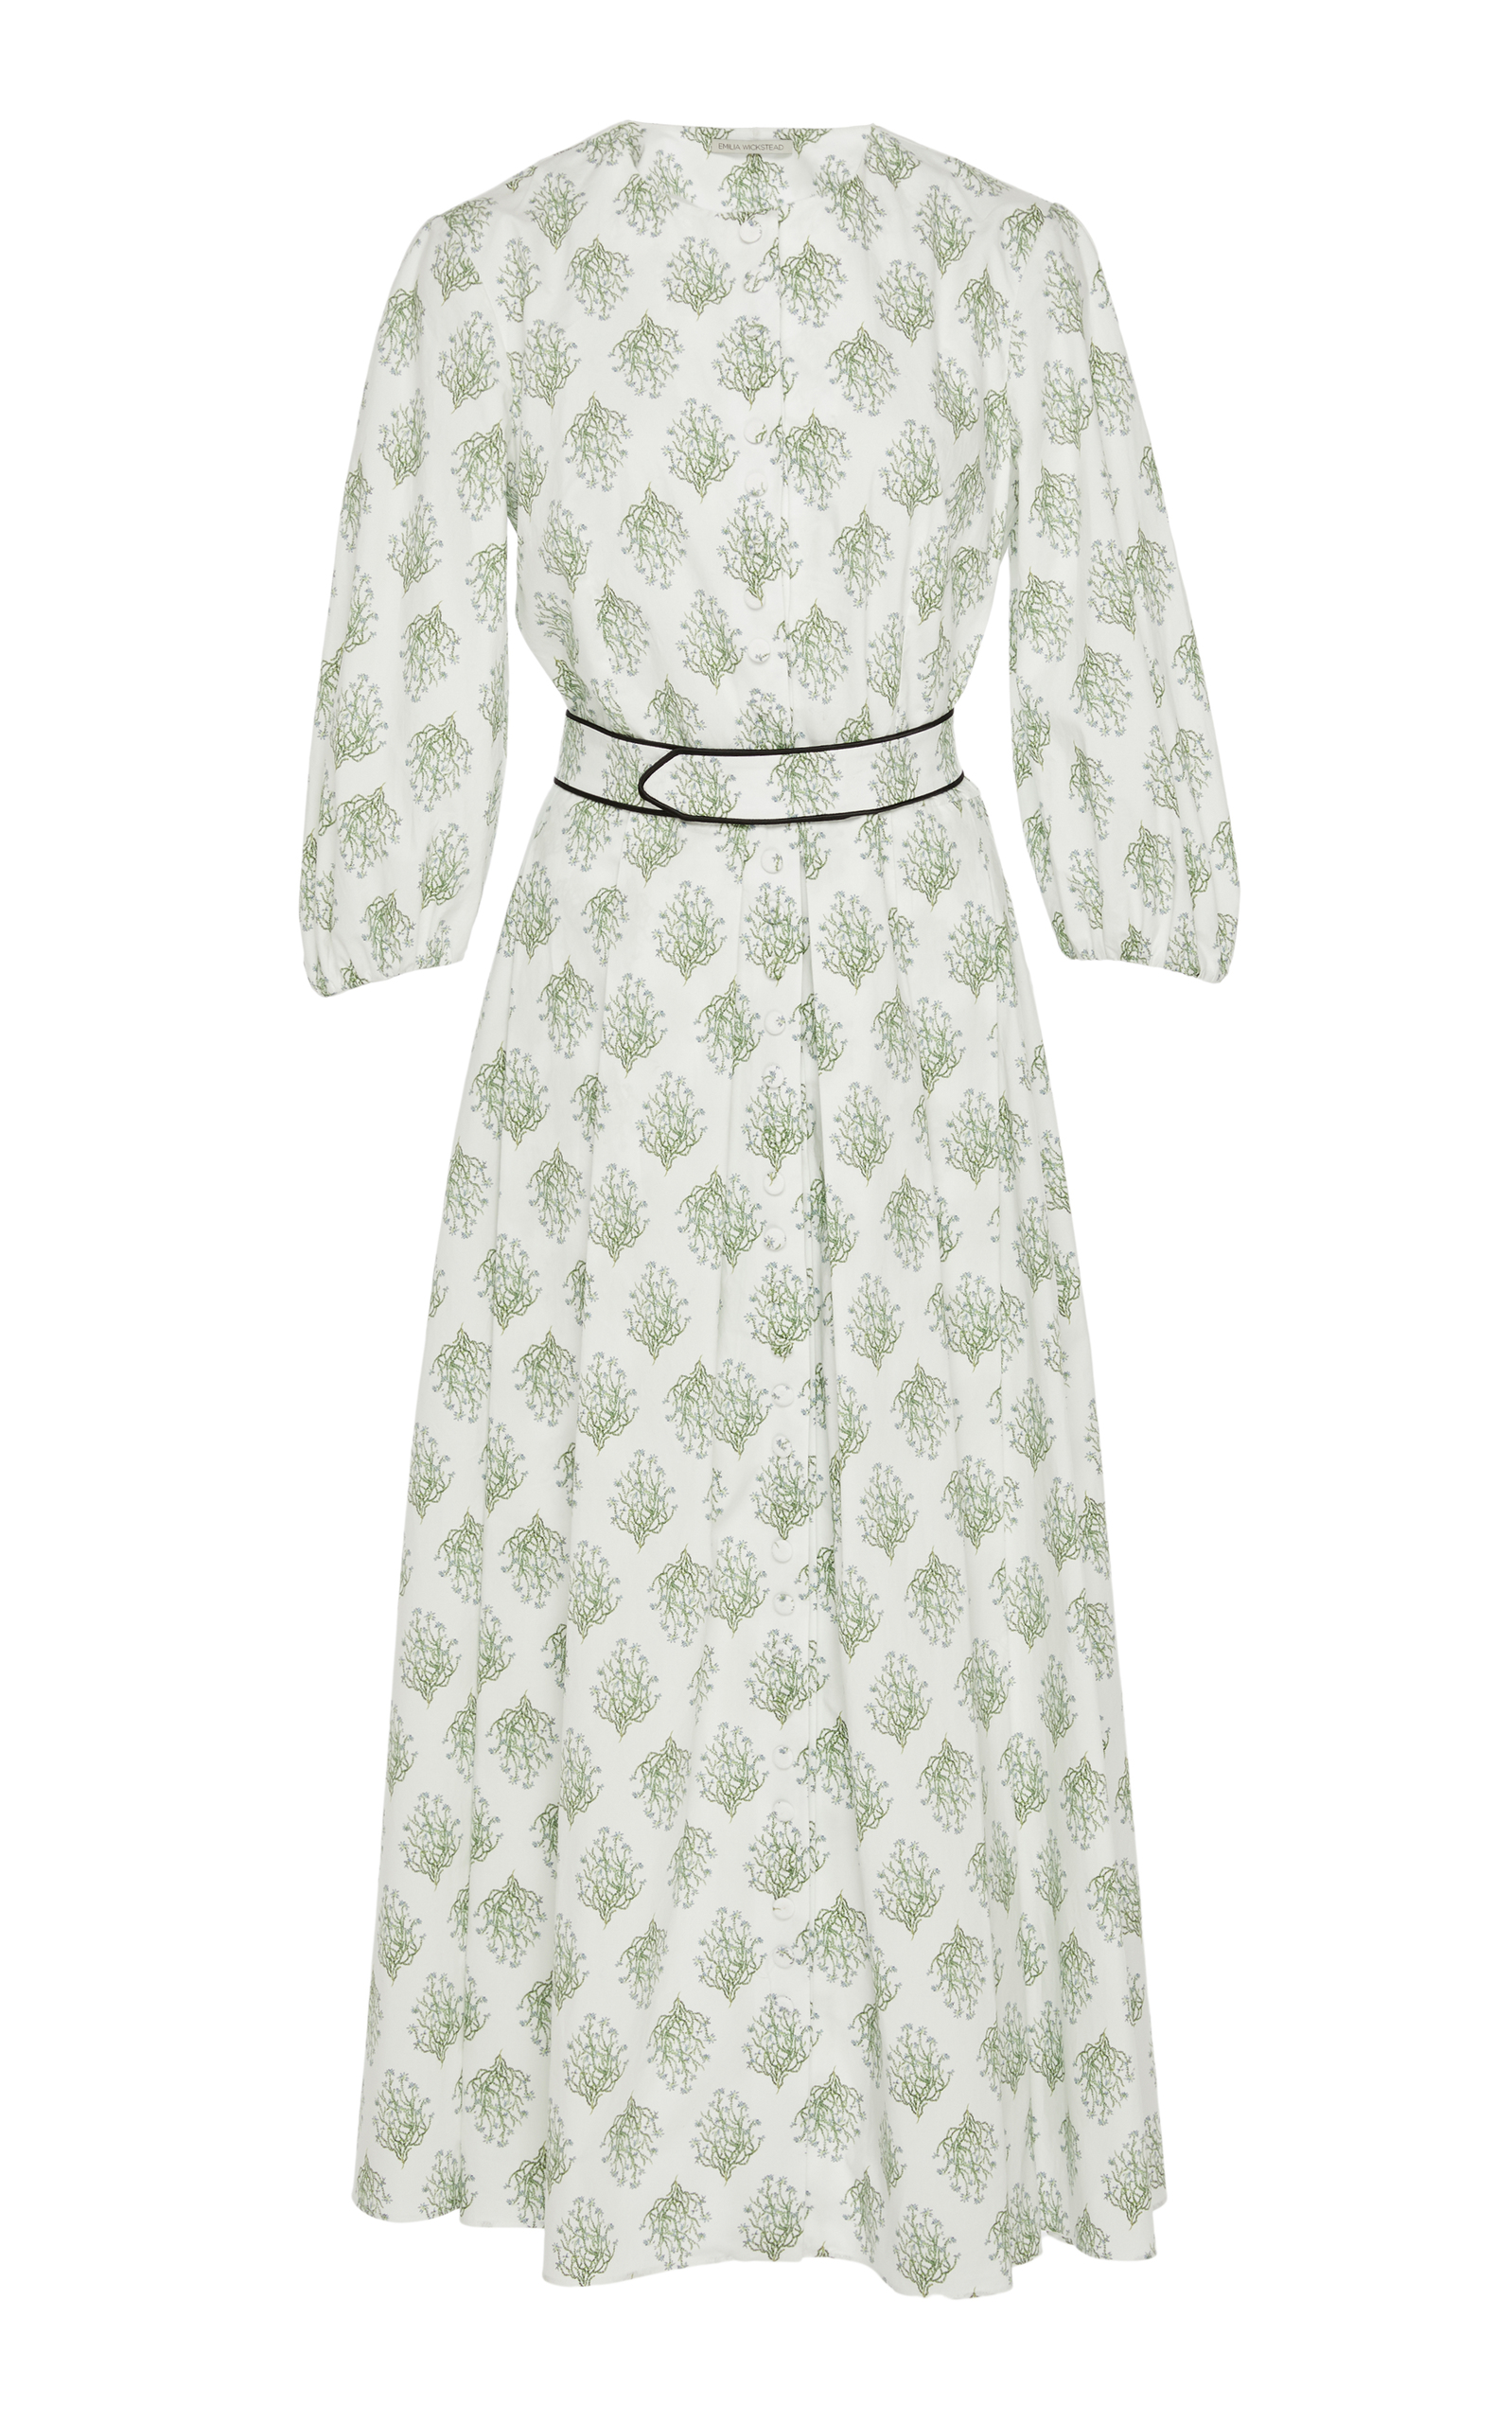 EMILIA WICKSTEAD Hilary Floral-Print Balloon-Sleeved Cotton Dress in White